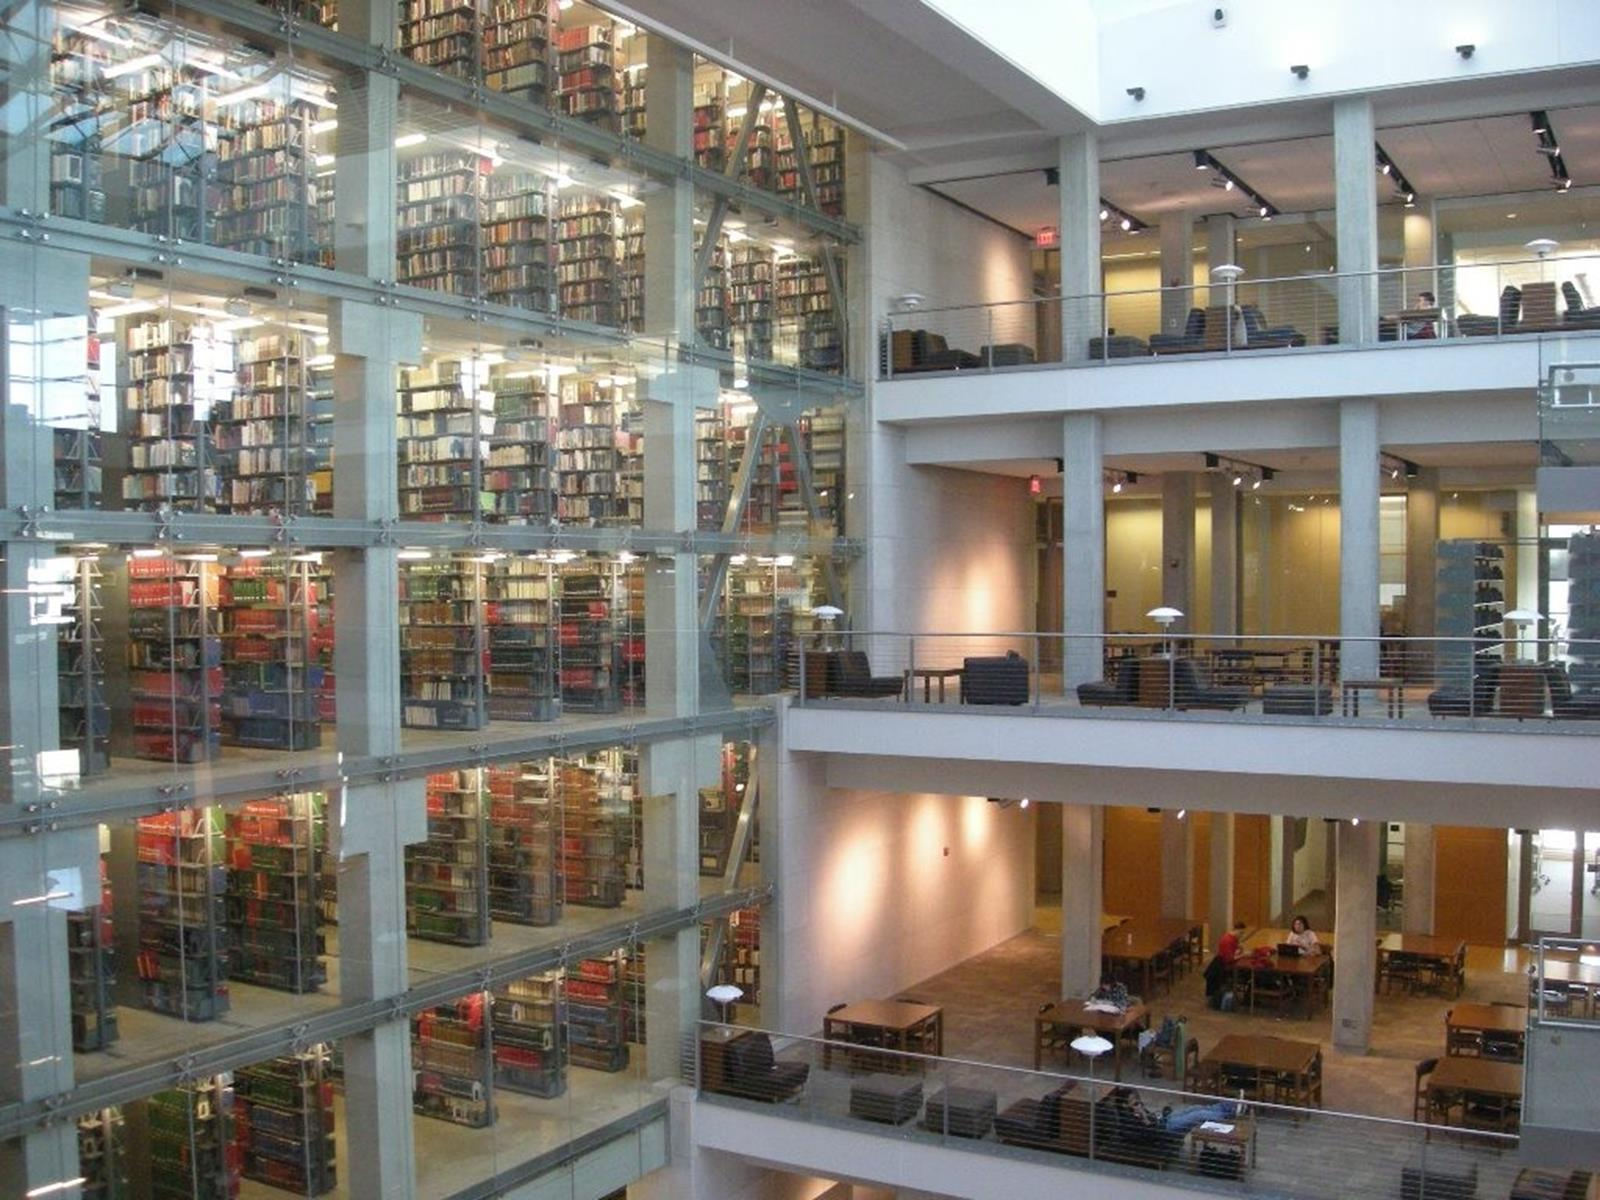 Thompson Library at The Ohio State University. Credit: Michael Barera